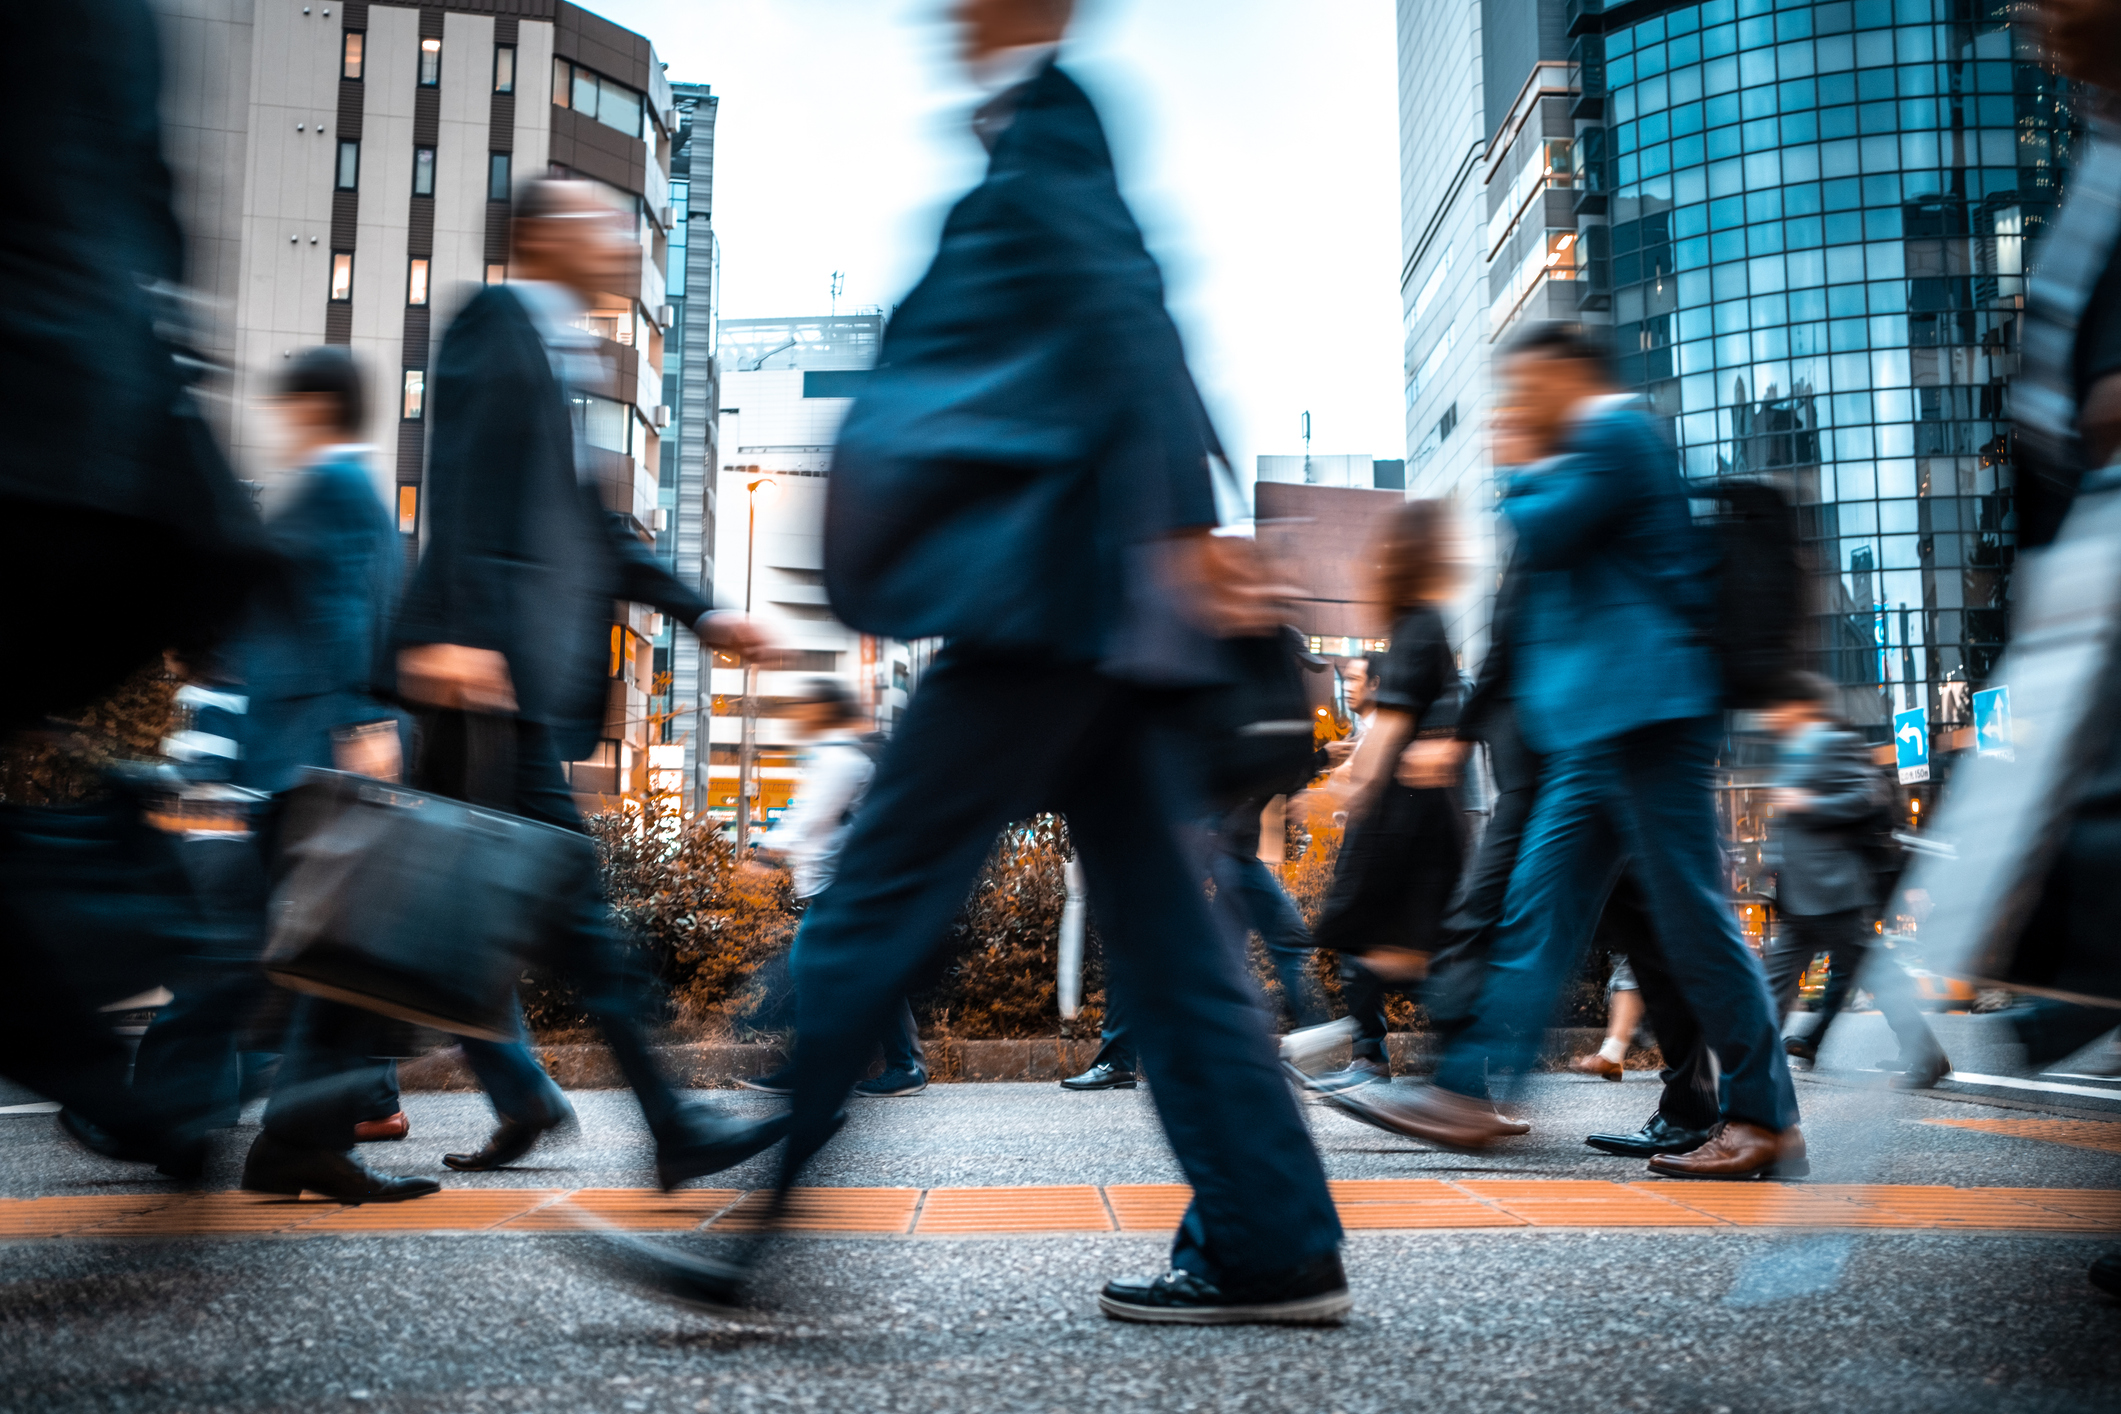 iStock-street blur business people going to work